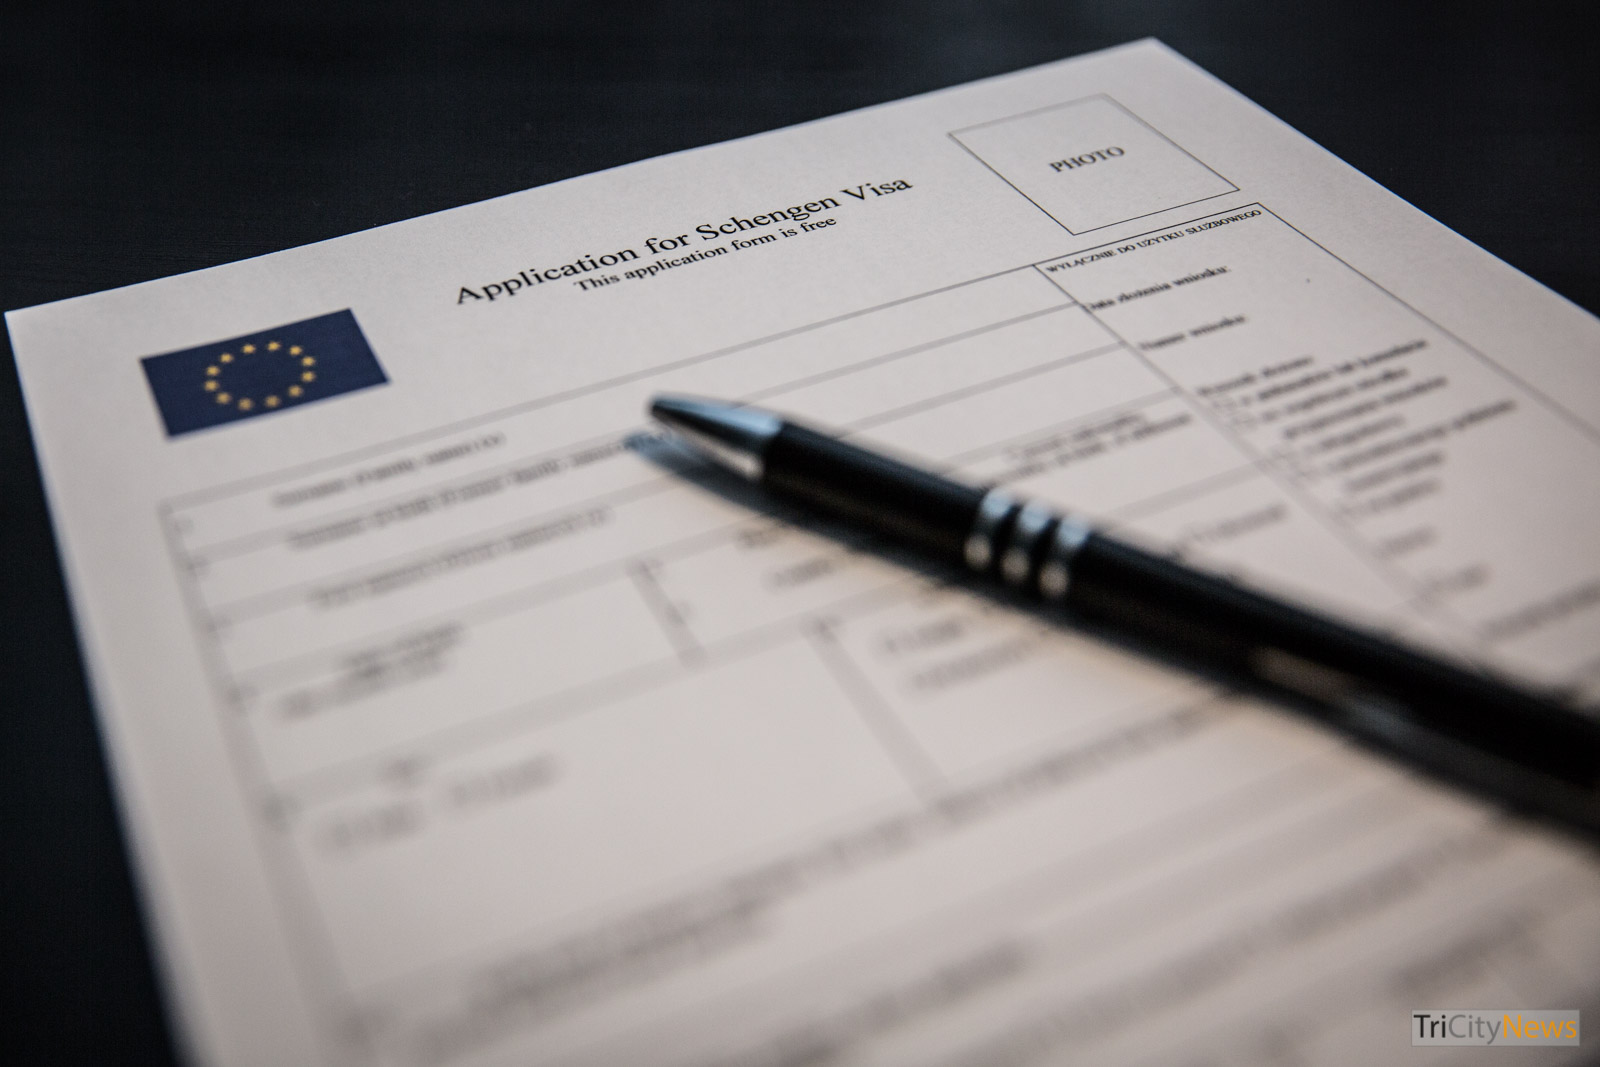 Visa Application Form, Photo: Jakub Woźniak/Tricity News